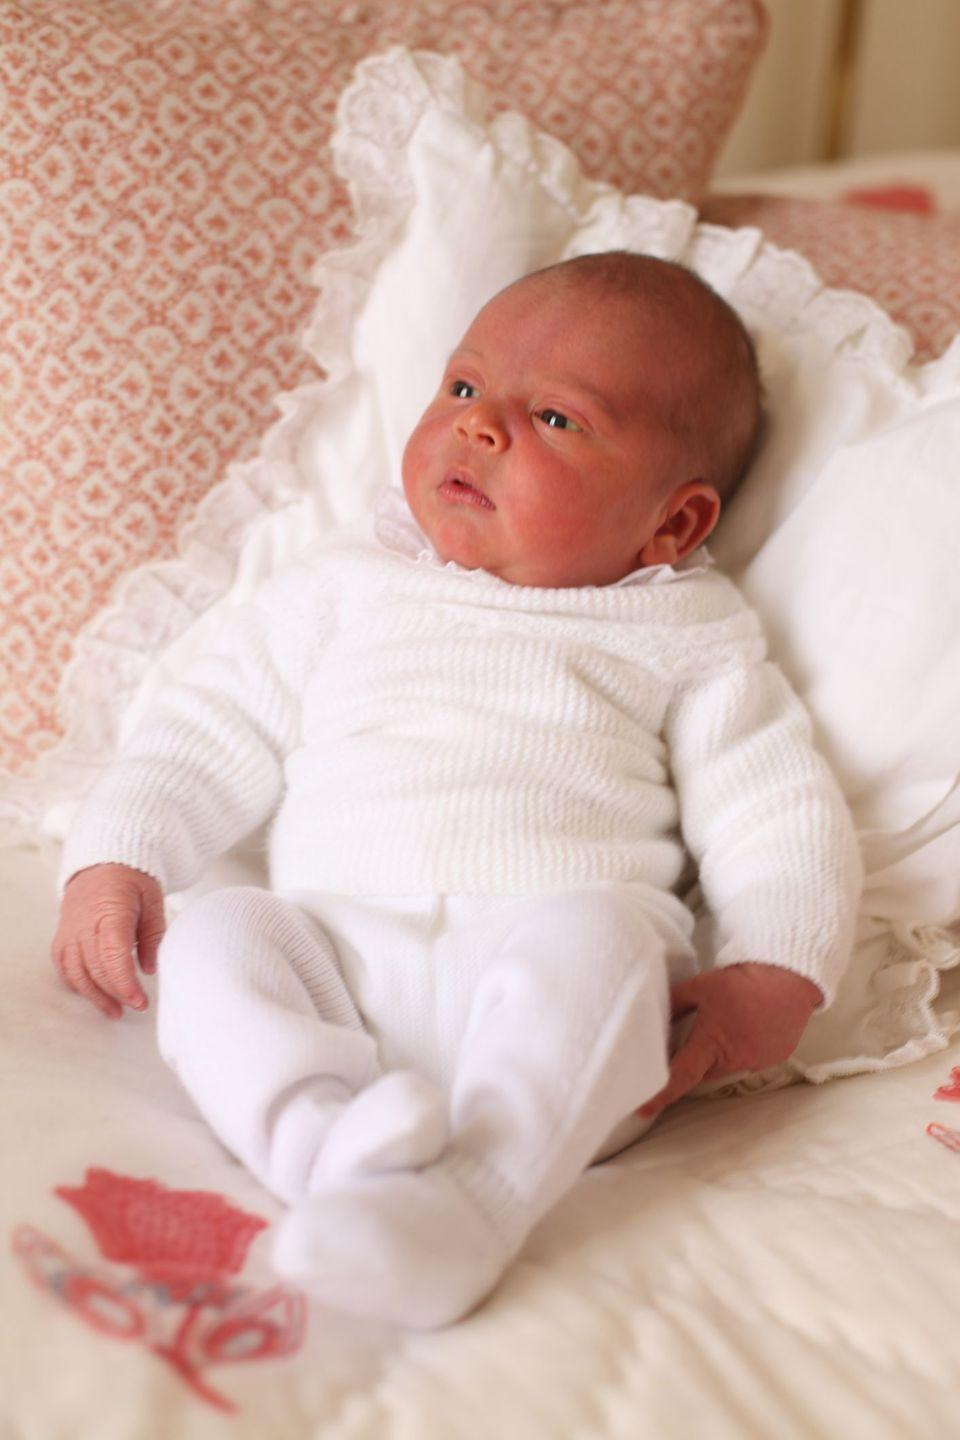 "<p>Prince Louis made his public debut <a href=""https://www.townandcountrymag.com/society/tradition/a26990385/prince-harry-meghan-markle-pose-hospital-royal-baby-history-photos/"" rel=""nofollow noopener"" target=""_blank"" data-ylk=""slk:on the Lindo Wing steps just hours after being born"" class=""link rapid-noclick-resp"">on the Lindo Wing steps just hours after being born</a>, but the first official portraits of Will and Kate's third child were a bit more intimate. Kate photographed her newborn baby at home, at Kensington Palace. </p>"